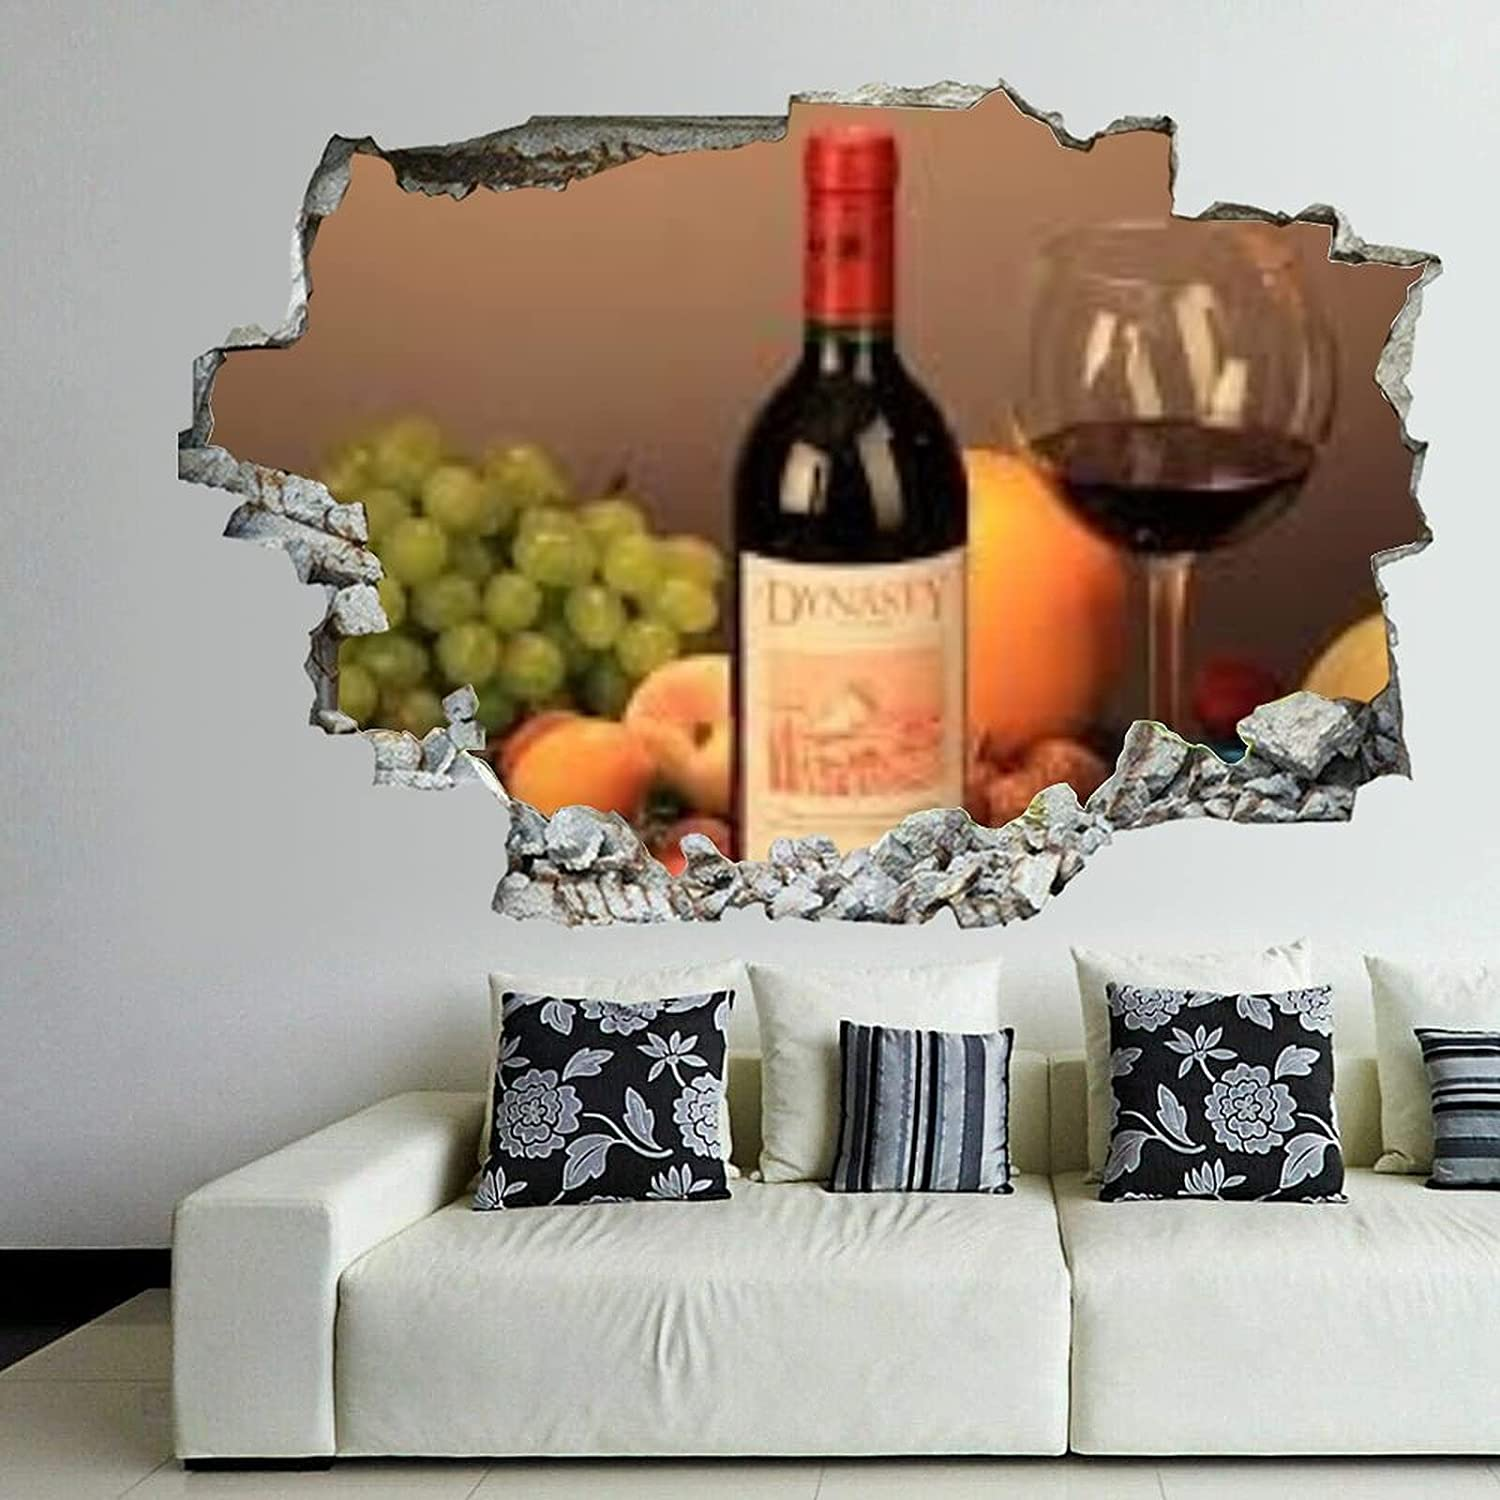 Wine Super Popularity popular specialty store Glass 3D Wall Art Smash Sticker Decals Adhesive Self